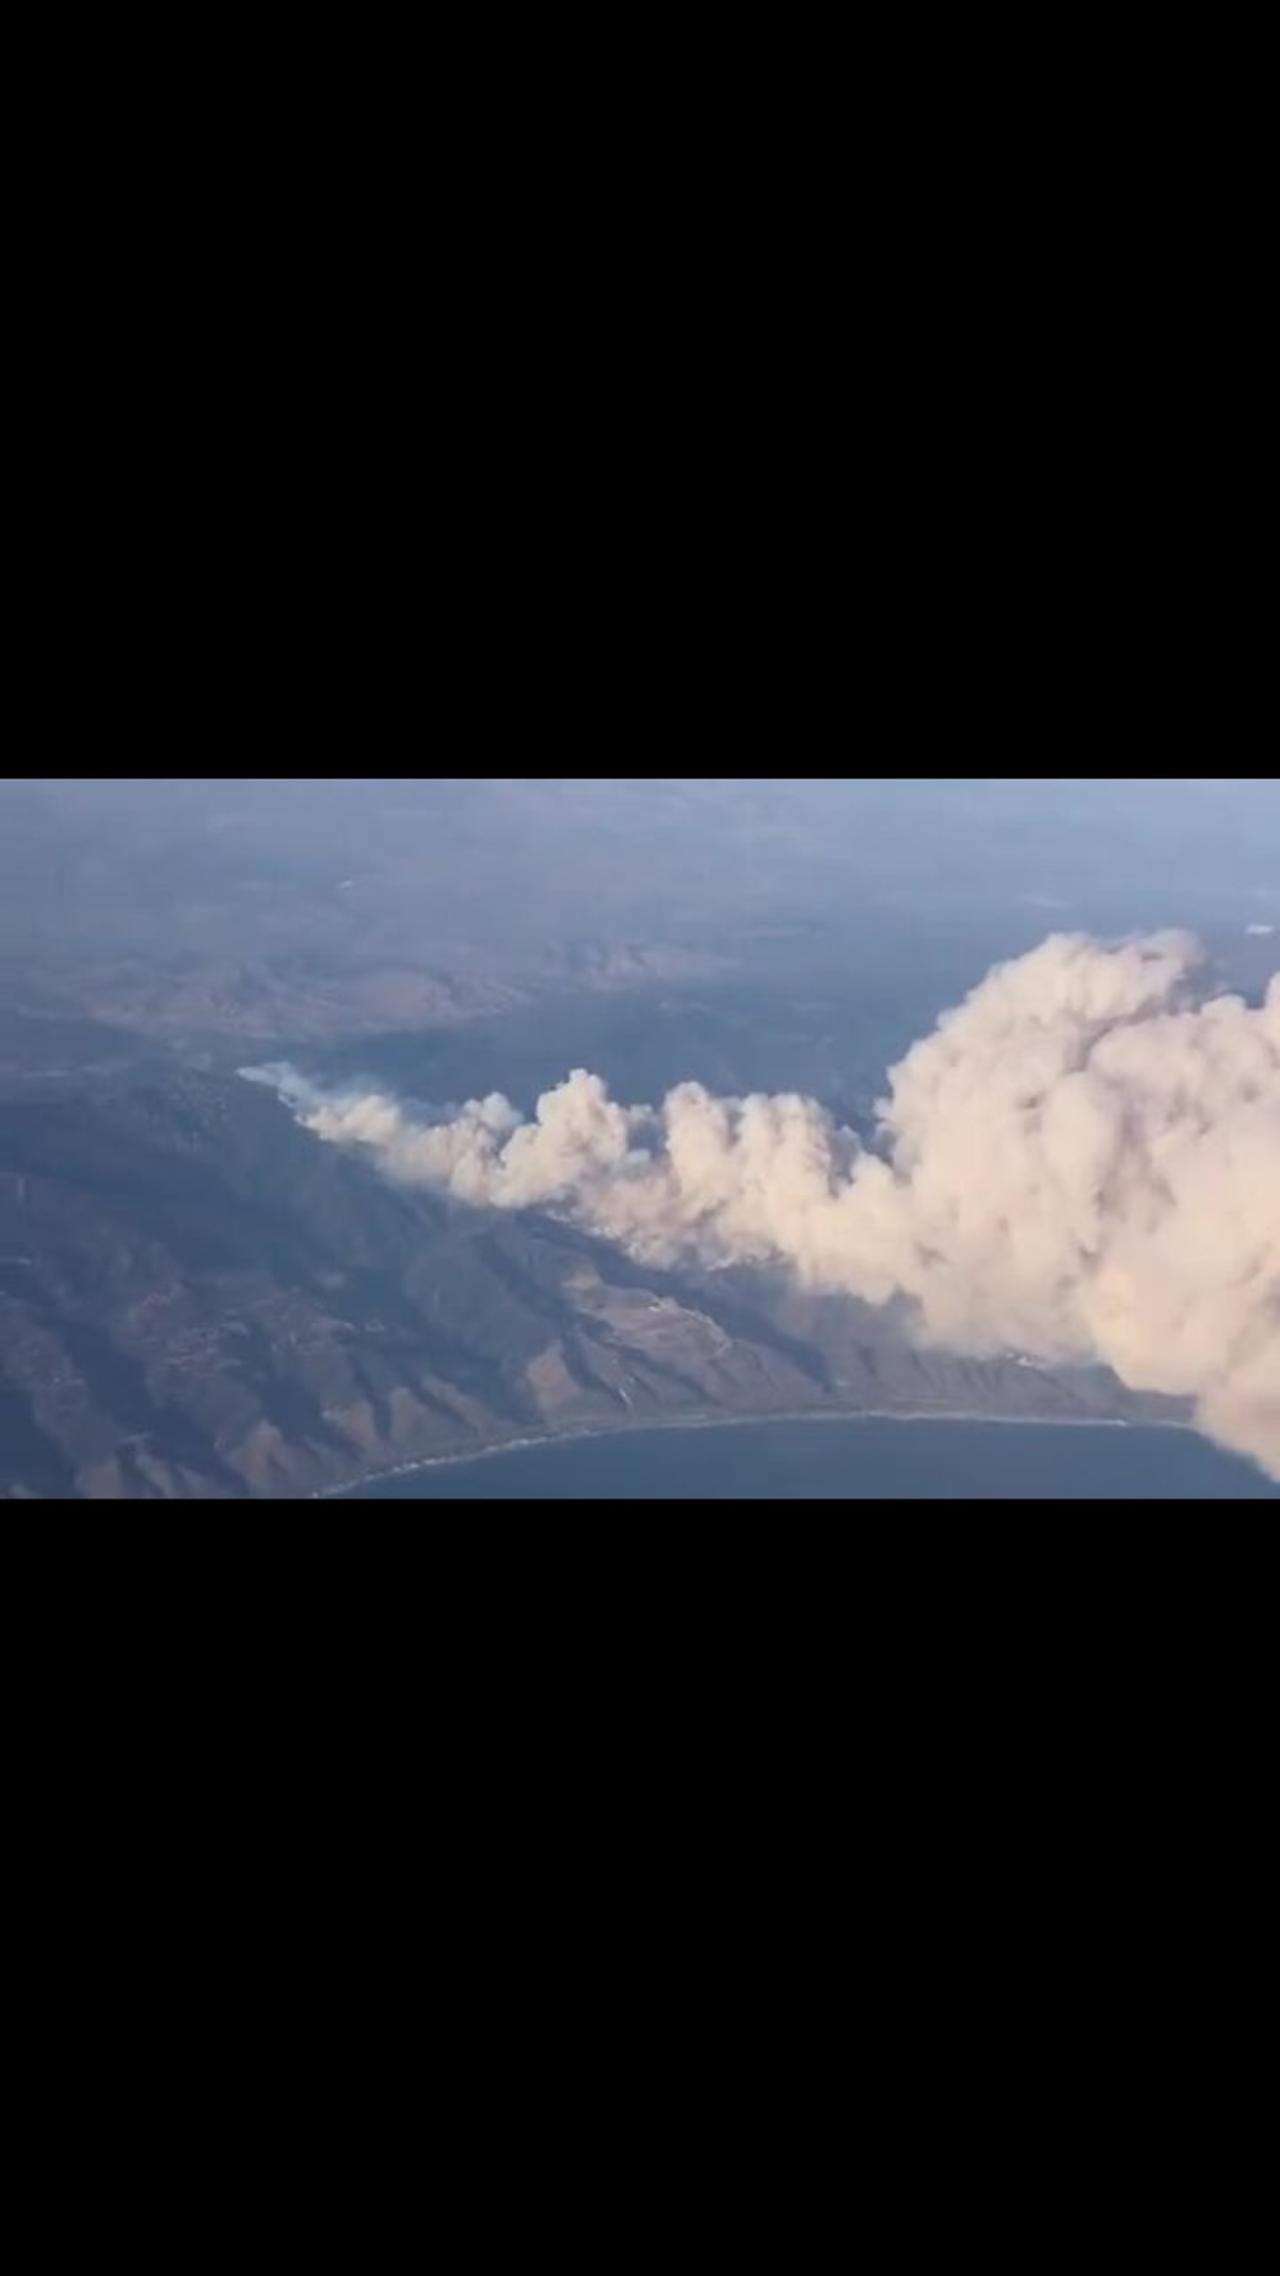 Airline passenger captures footage of Alisal Fire in Santa Barbara County